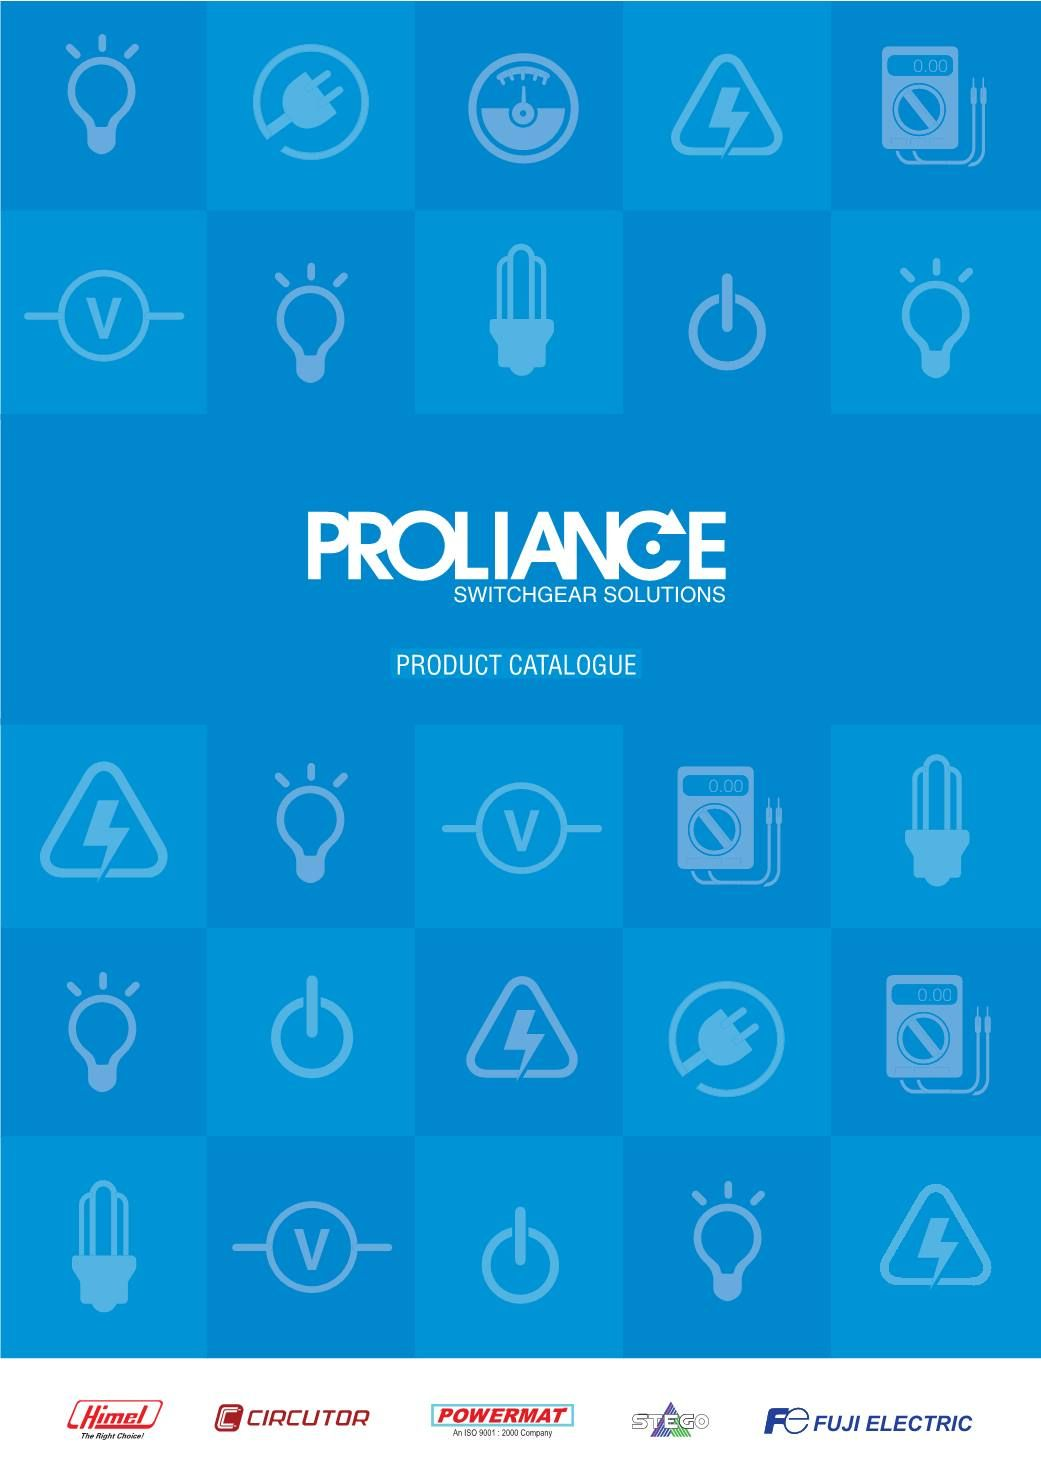 Best Electrical Trading Company In UAE | Proliance Electrical